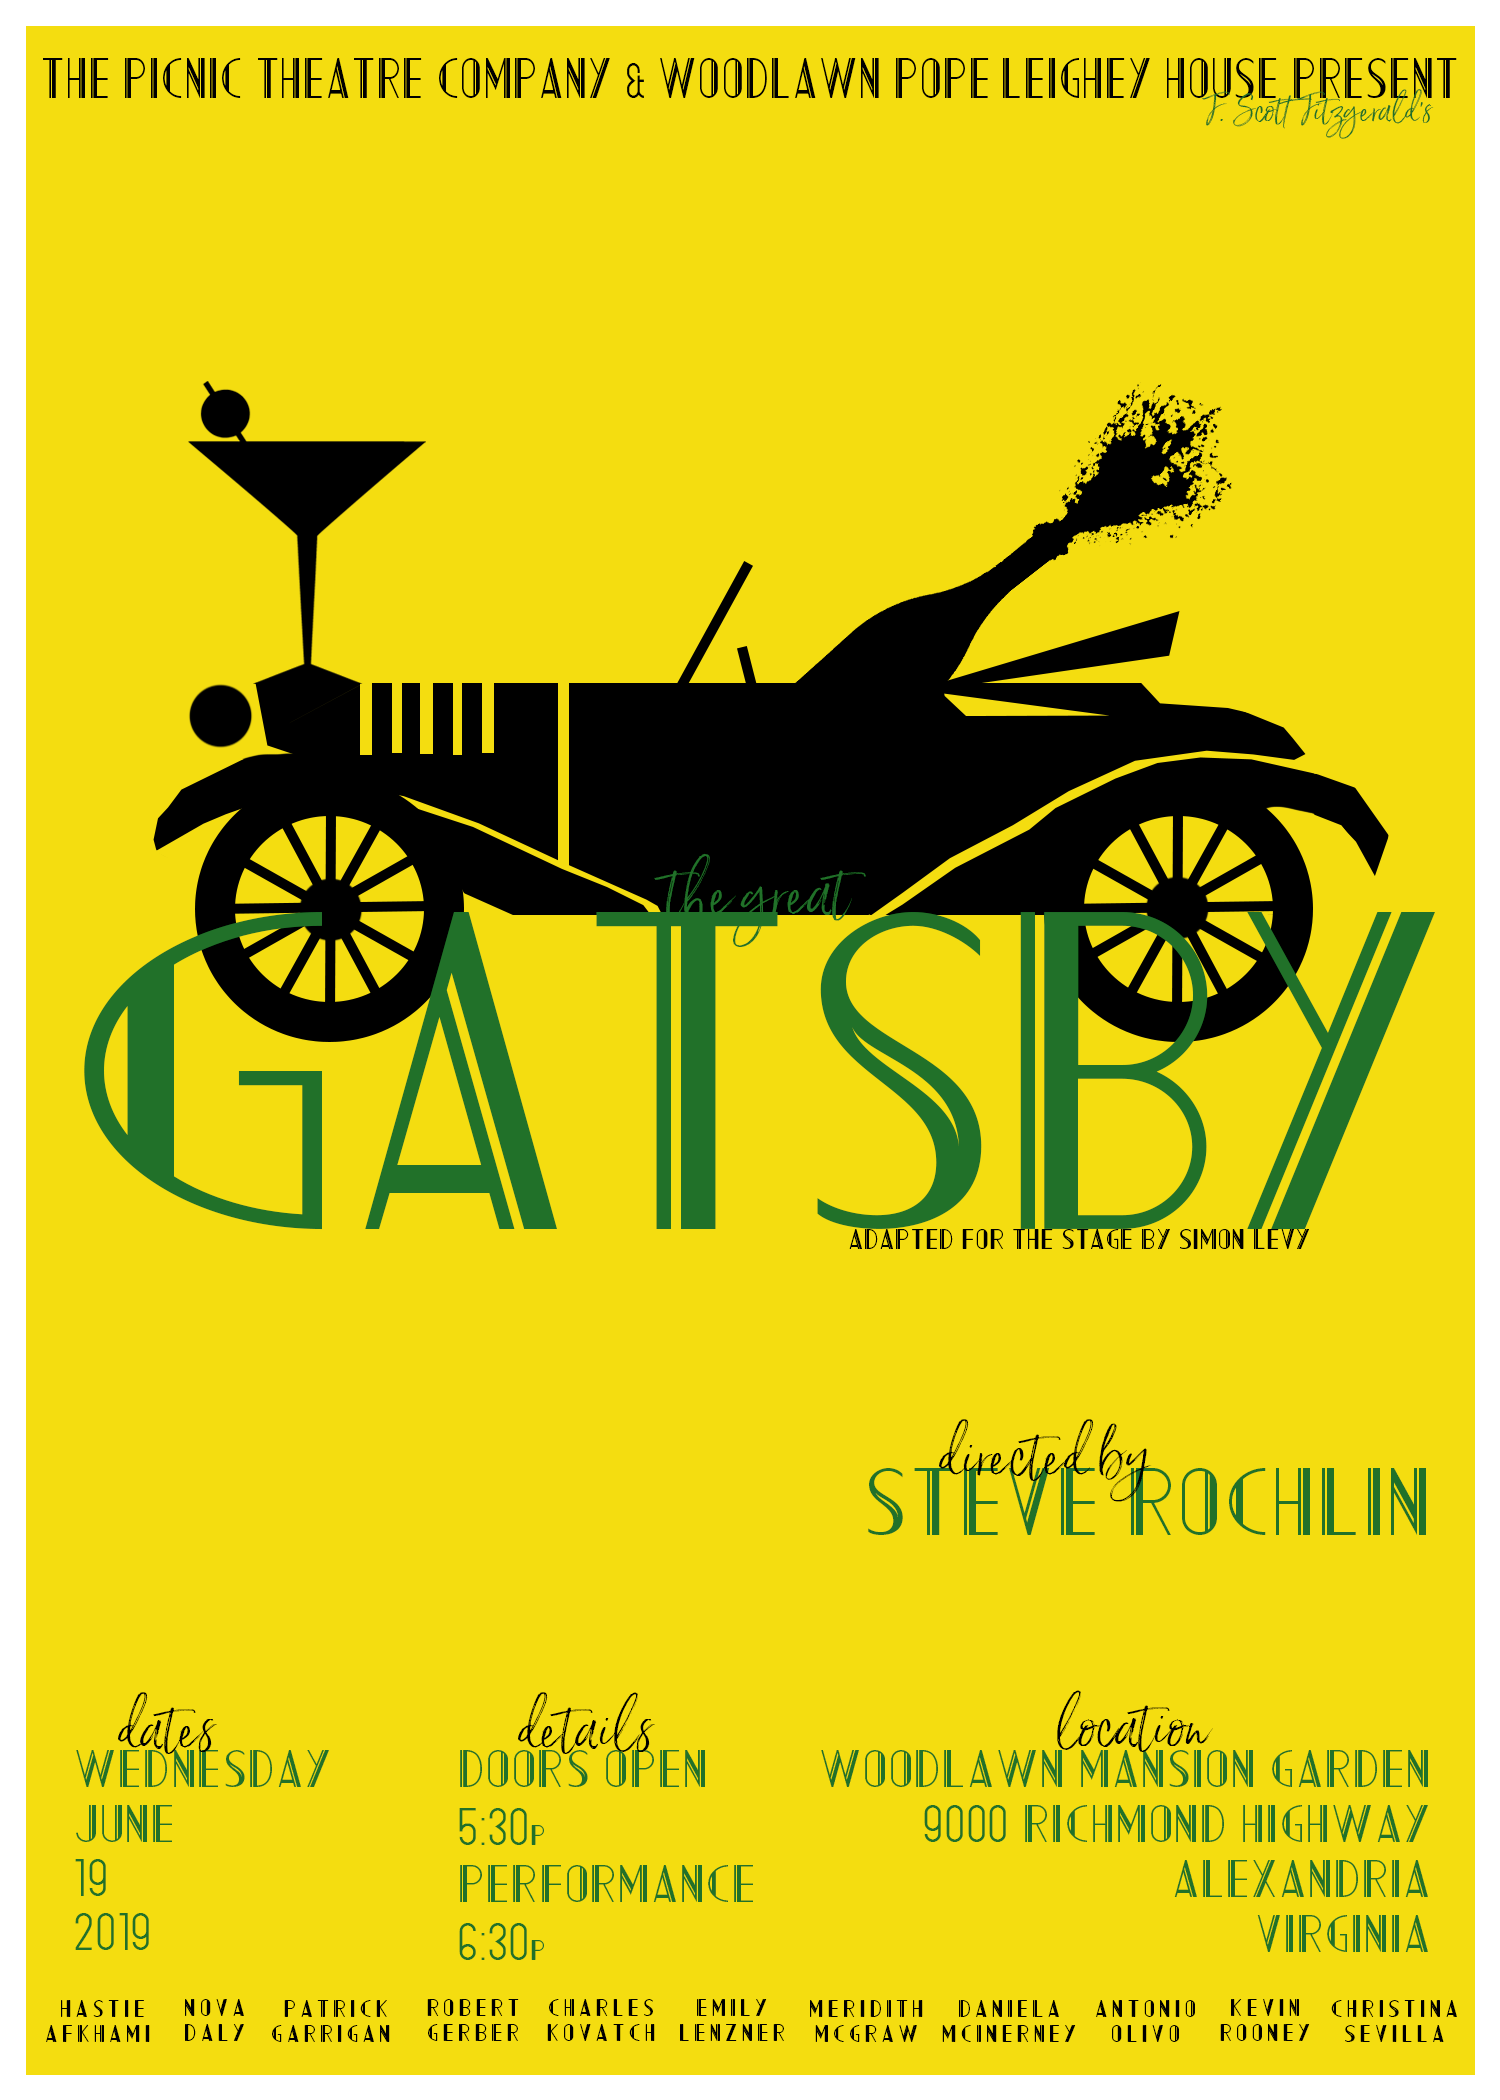 Picnic Theatre Company Presents: The Great Gatsby - CLICK HERE FOR TICKETS!! On Wednesday June 19, be transported to the mansion of mysterious multimillionaire Jay Gatsby for a summer party! Picnic Theatre Company returns to Woodlawn Mansion garden for a Roaring Twenties cocktail hour, music and live action one- act performance of F. Scott Fitzgerald's The Great Gatsby.Join us in the Woodlawn Mansion fountain garden for drinks, a picnic, and a wild theatrical romp! At 5:30pm the garden opens for cocktails and picnicking, performance is at 6:30 pm, with no intermission.We will have drinks for sale to accompany the picnic dinner you have brought from home. Or, dinner is on us – purchase a pre-packaged picnic dinner and we will have it waiting for you! Dinner options will be sent to all attendees a few weeks before the event.